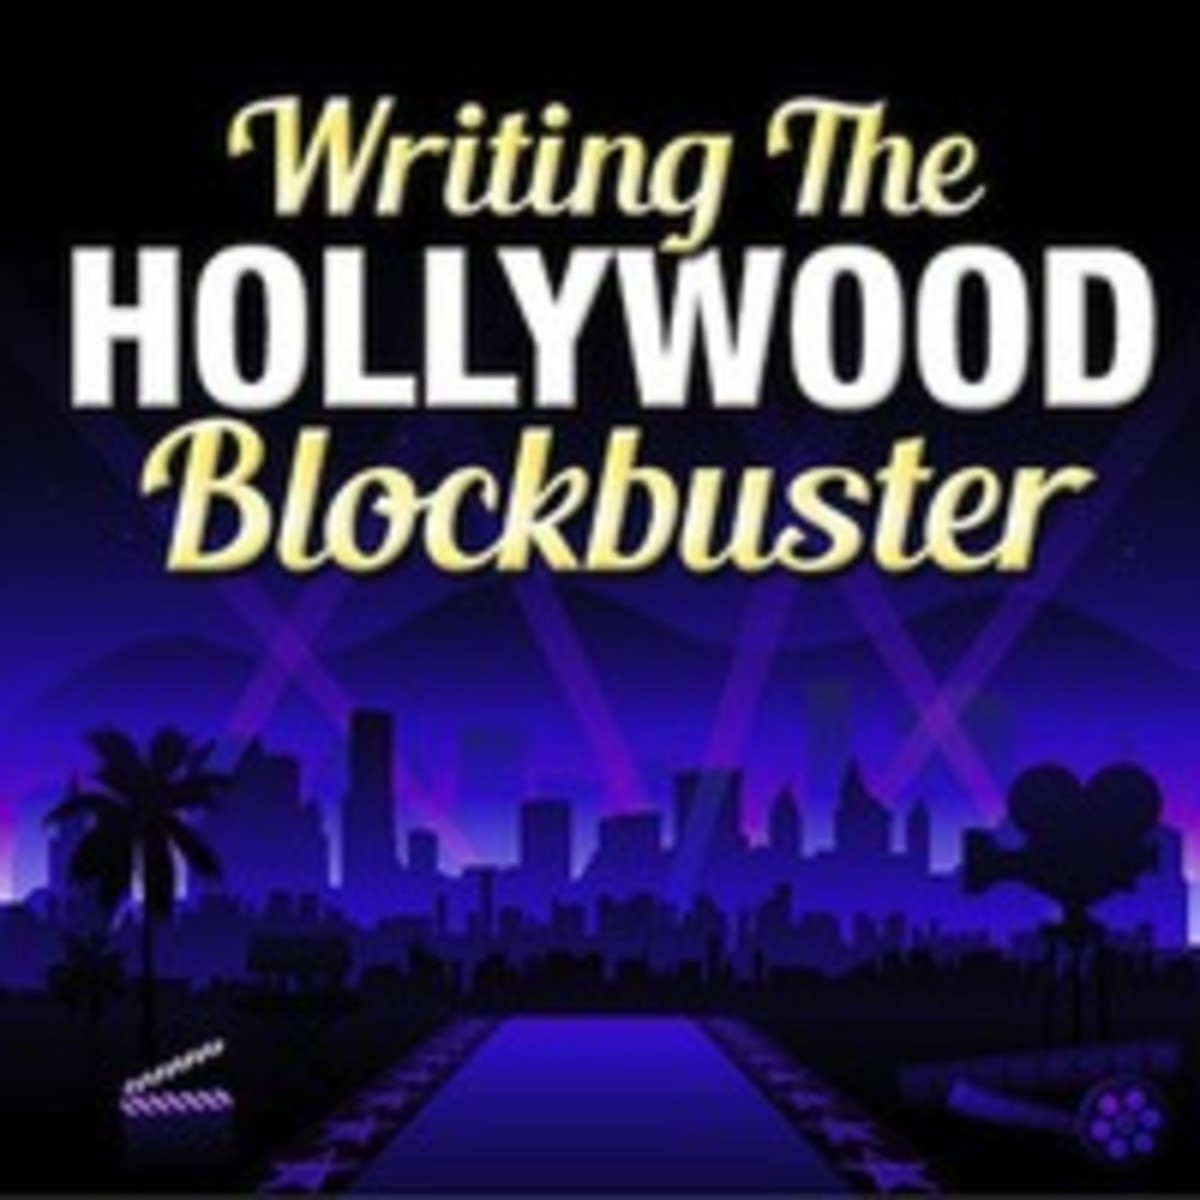 Writing The Hollywood Blockbuster